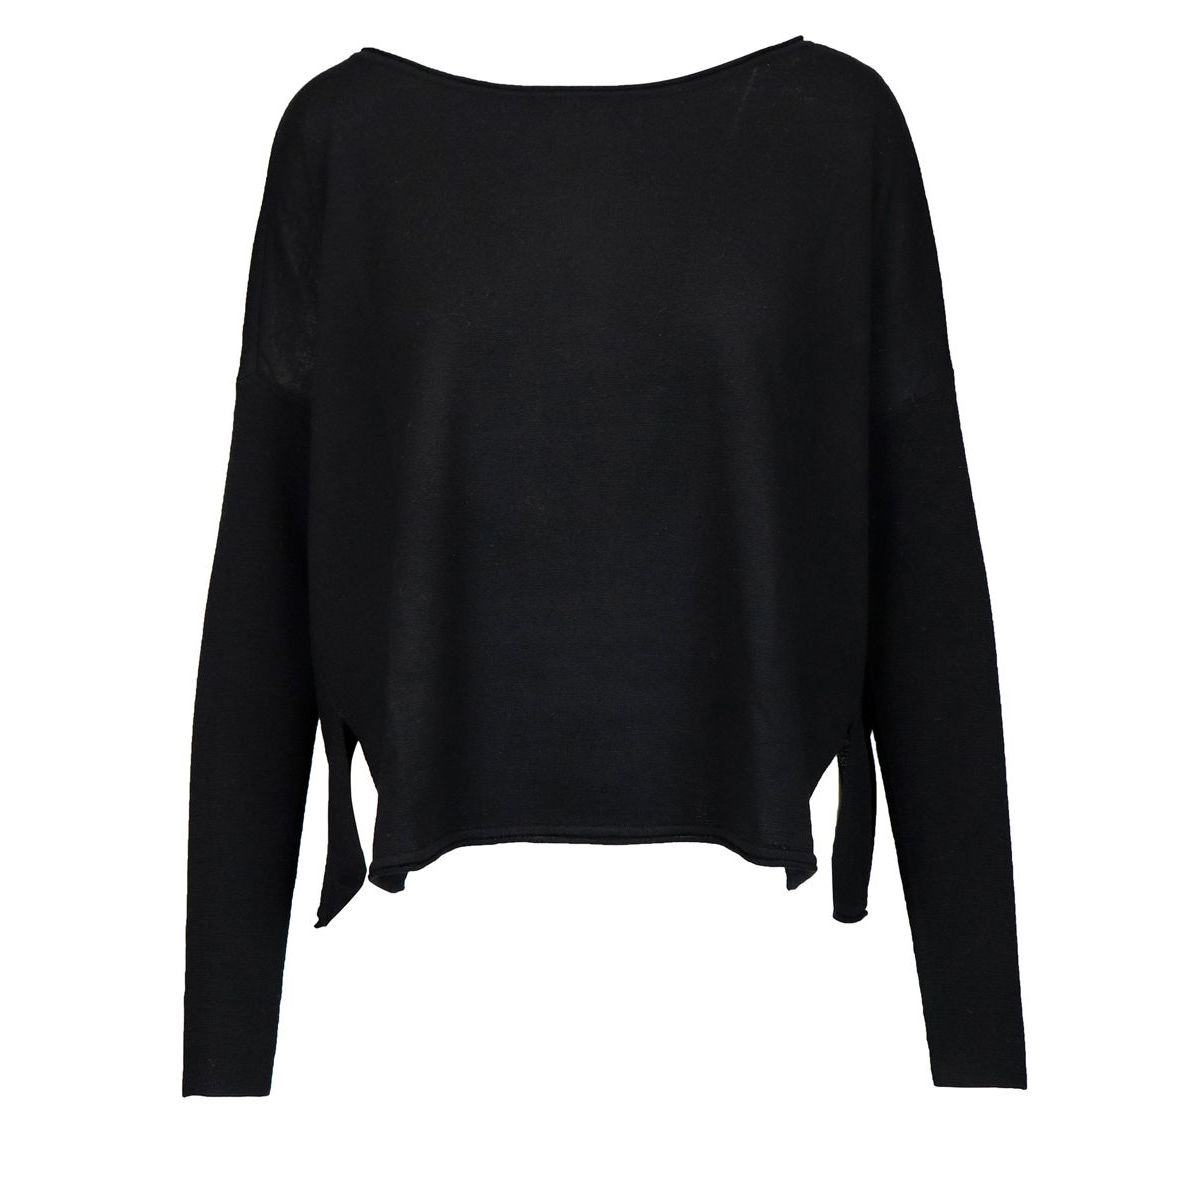 Wool crew neck sweater with side slits Black Maliparmi